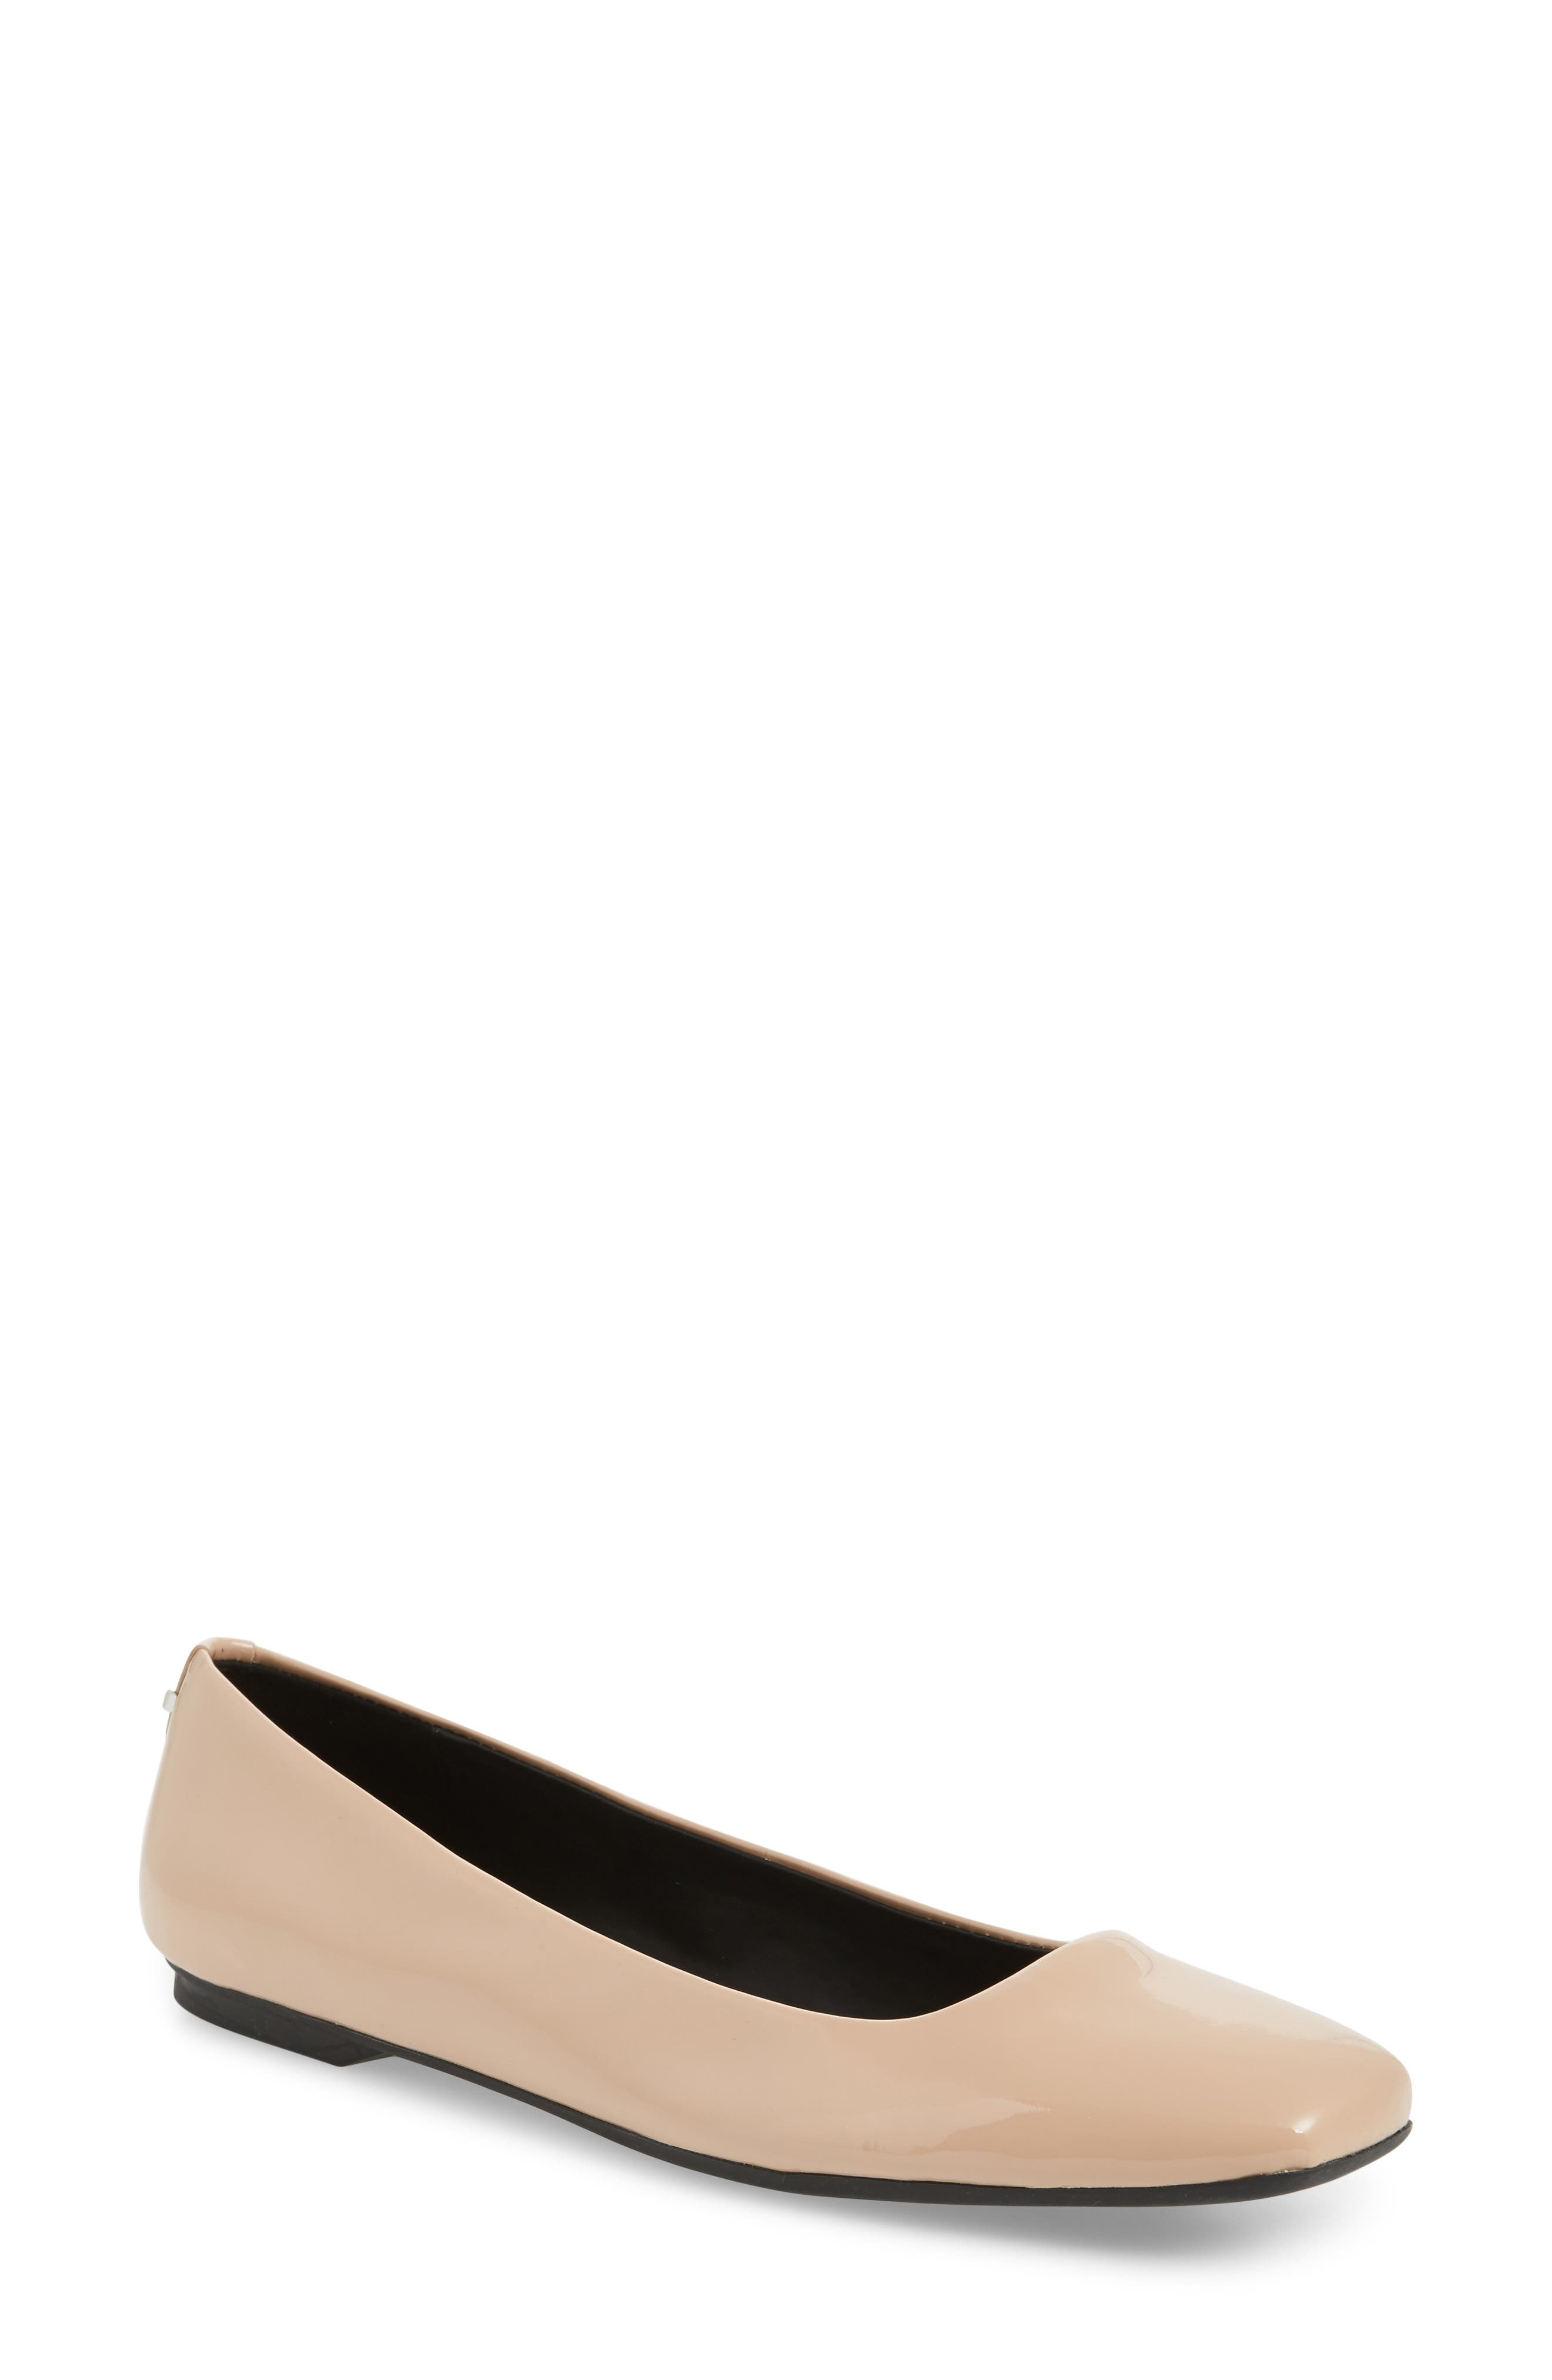 Enith Flat,                         Main,                         color, Desert Sand Leather